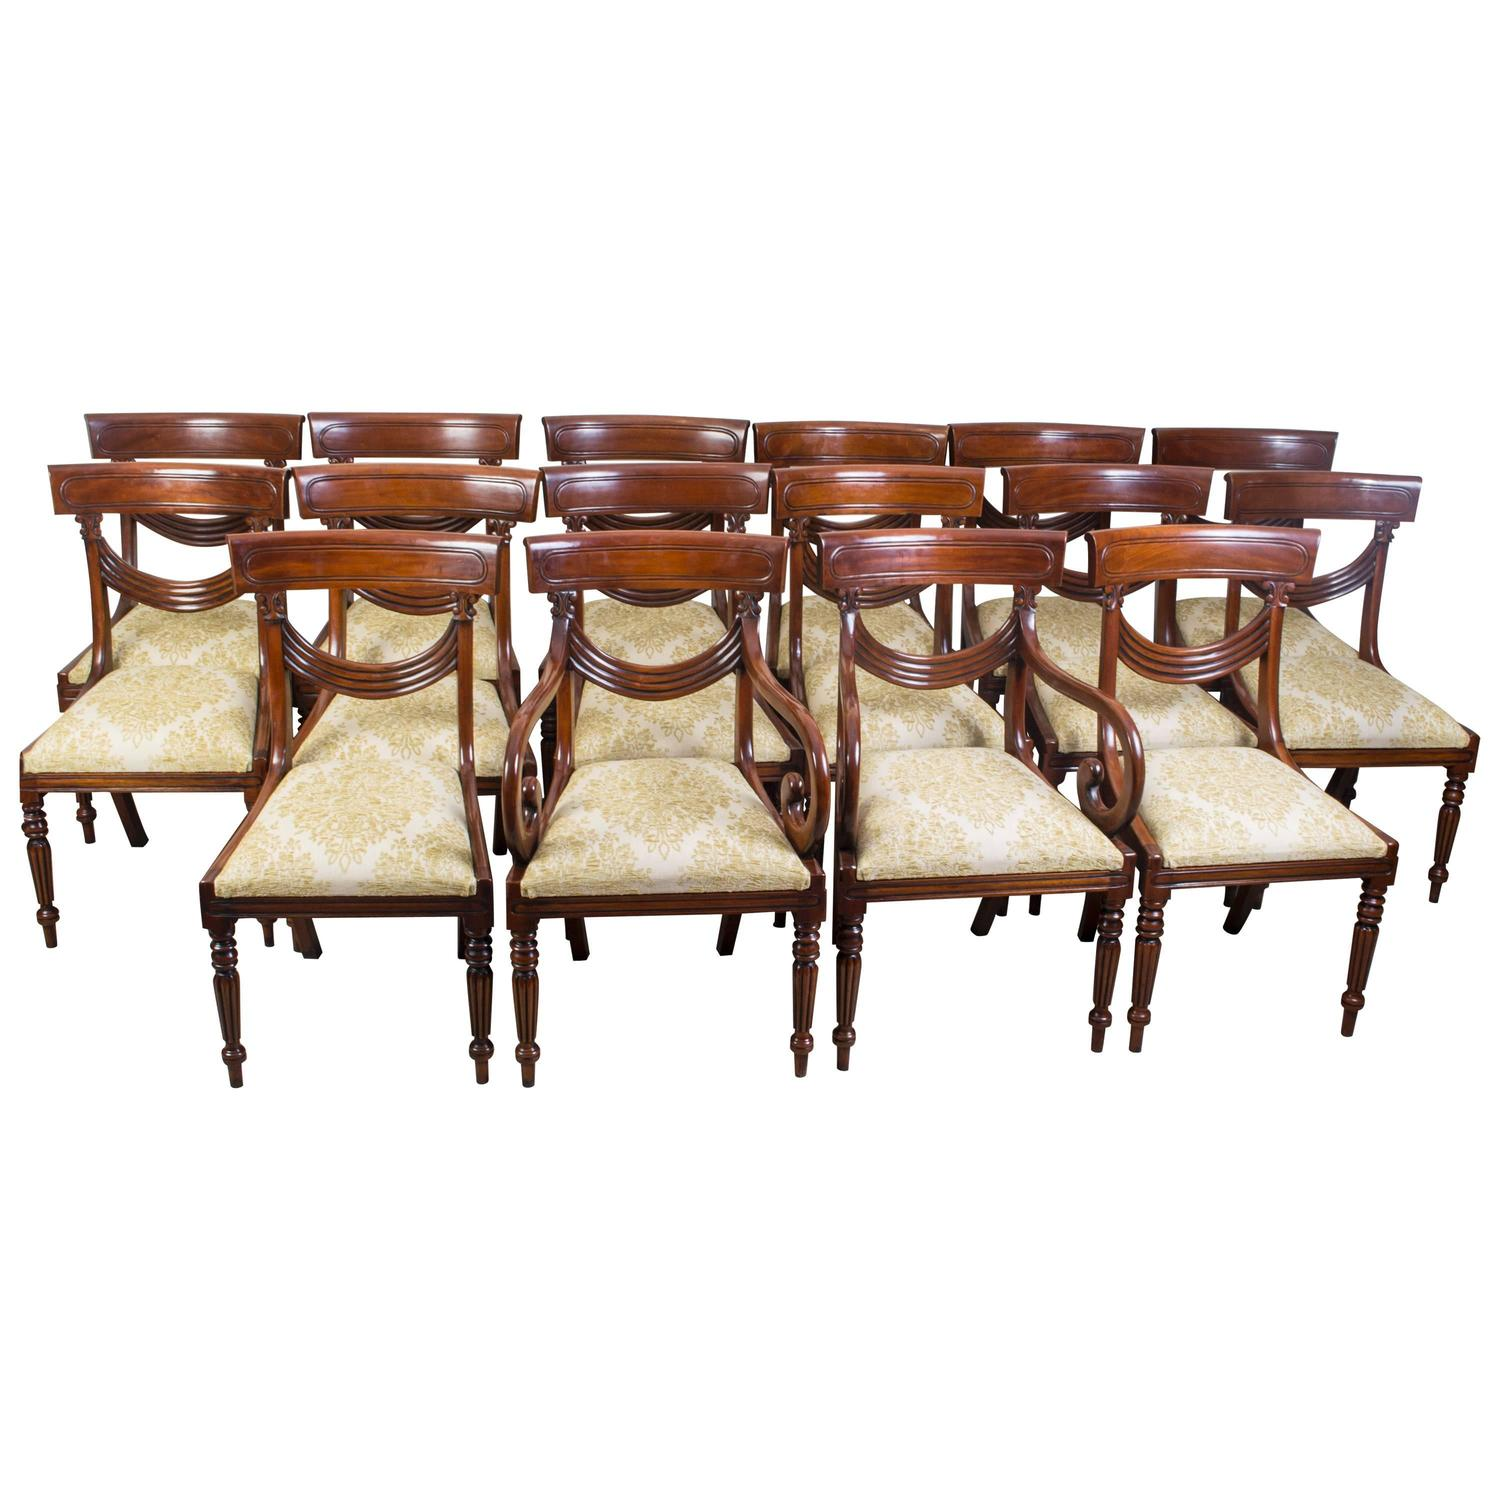 Set Of 16 Vintage Regency Style Dining Chairs Swag Back For Sale At 1stdibs